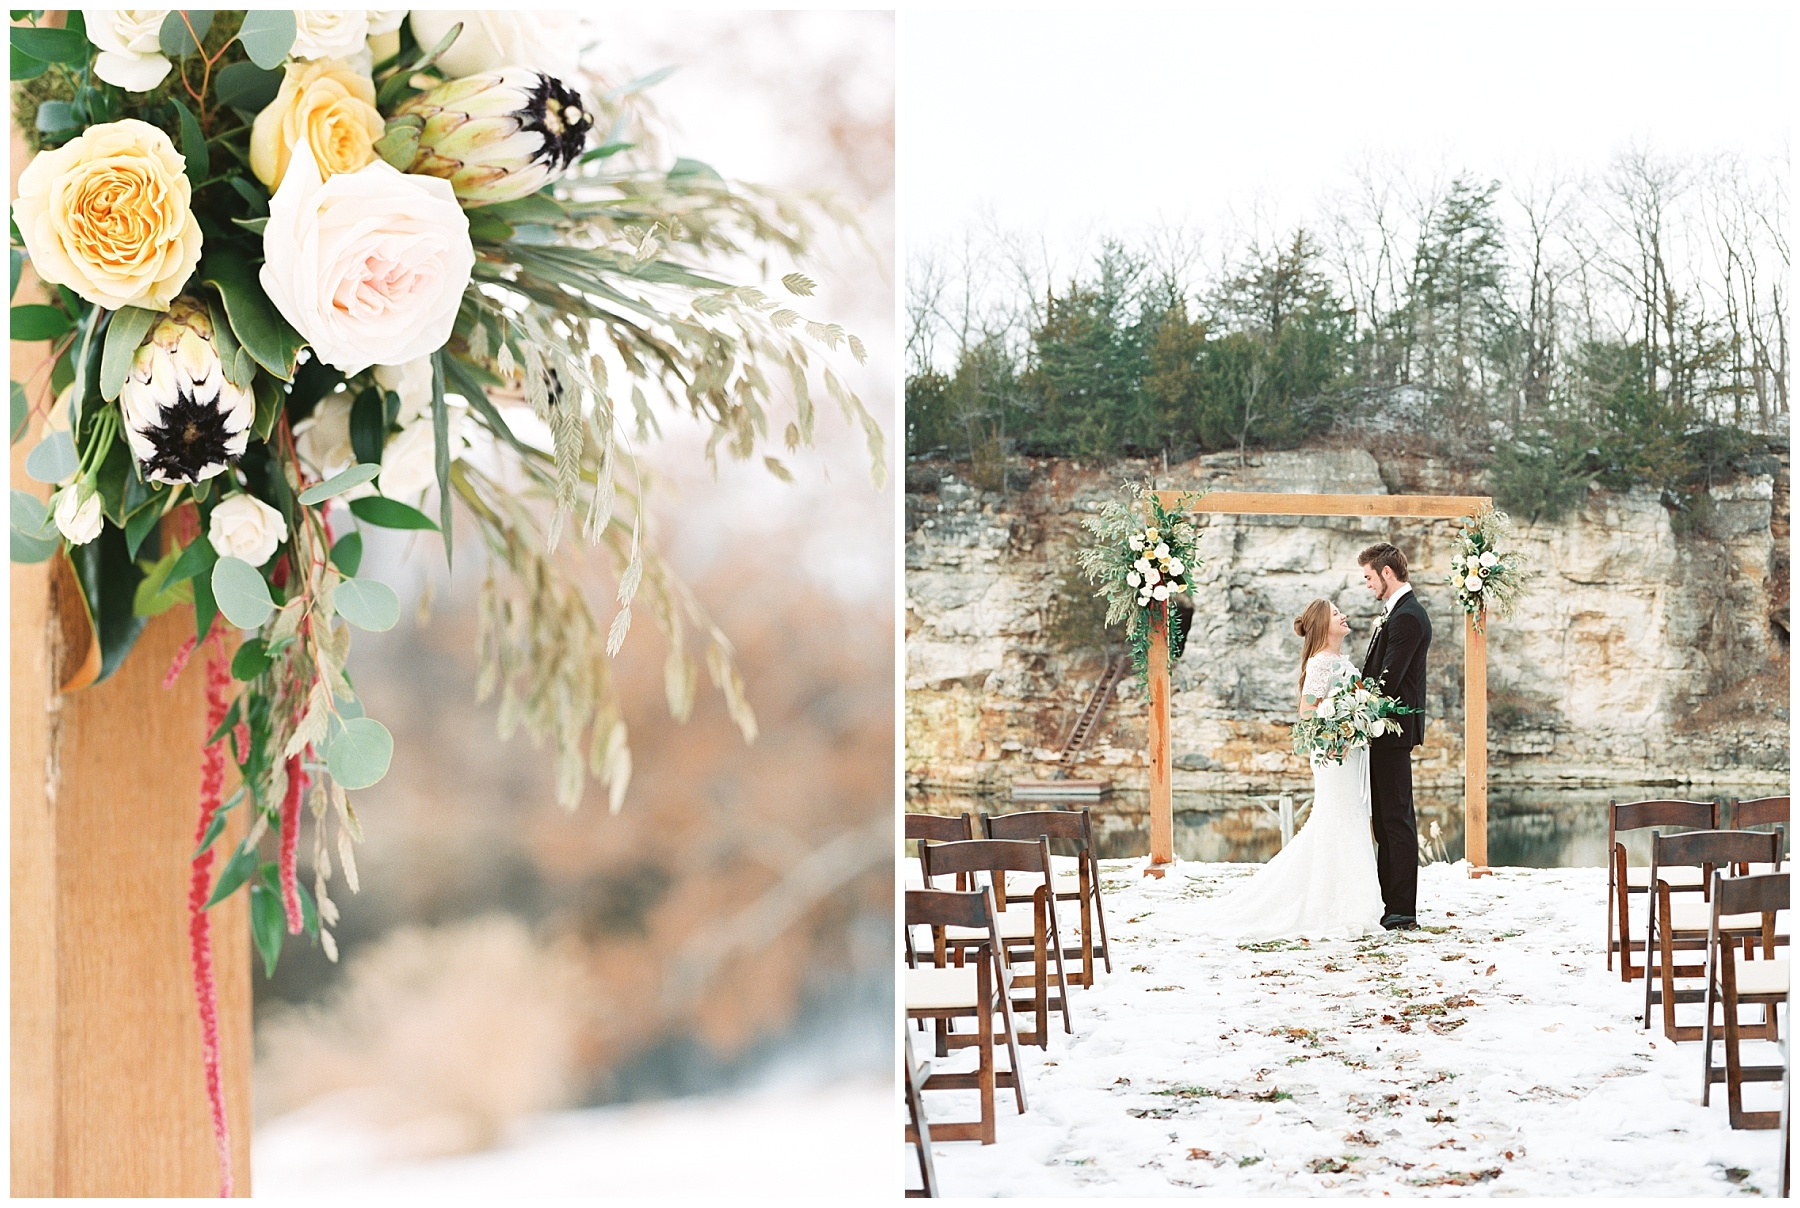 Snowy Winter Wedding at Wildcliff Events Lake With Earthy Jewel Tones and Organic Refined Style by Kelsi Kliethermes Photography Kansas City Missouri Wedding Photographer_0100.jpg